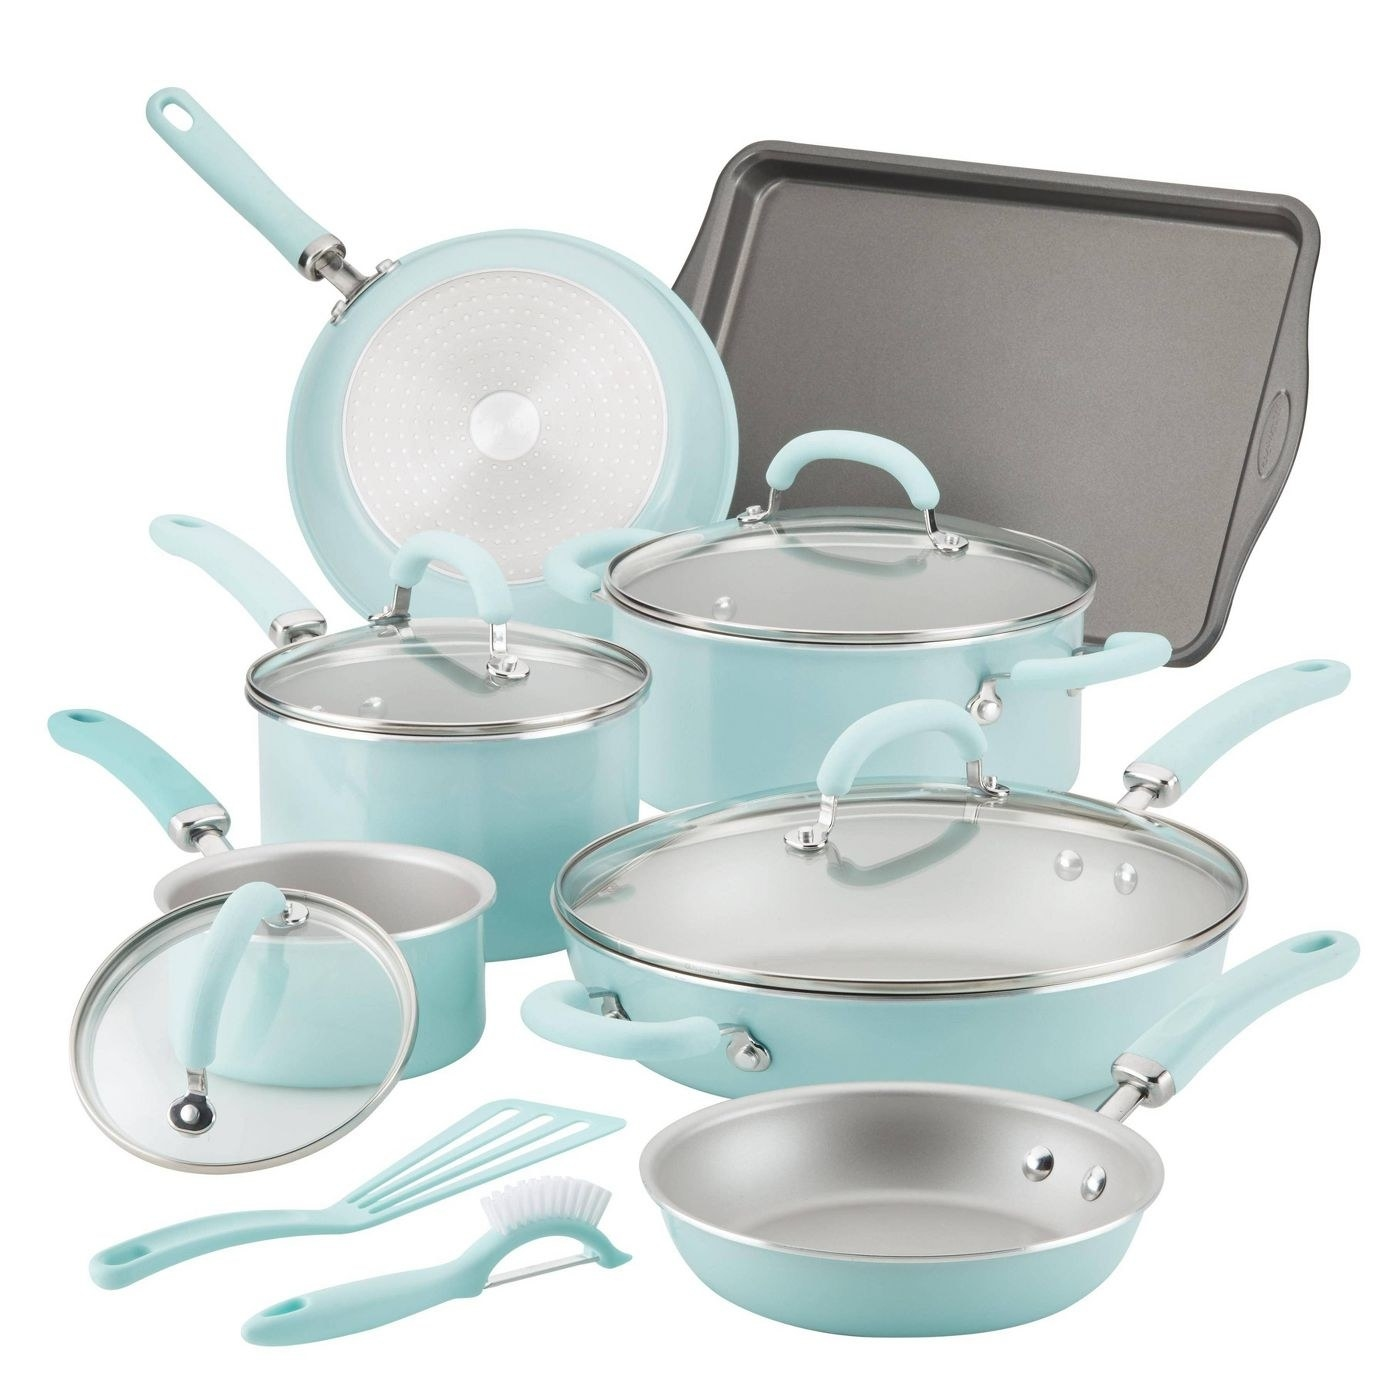 mint green cookware set with pots and pans